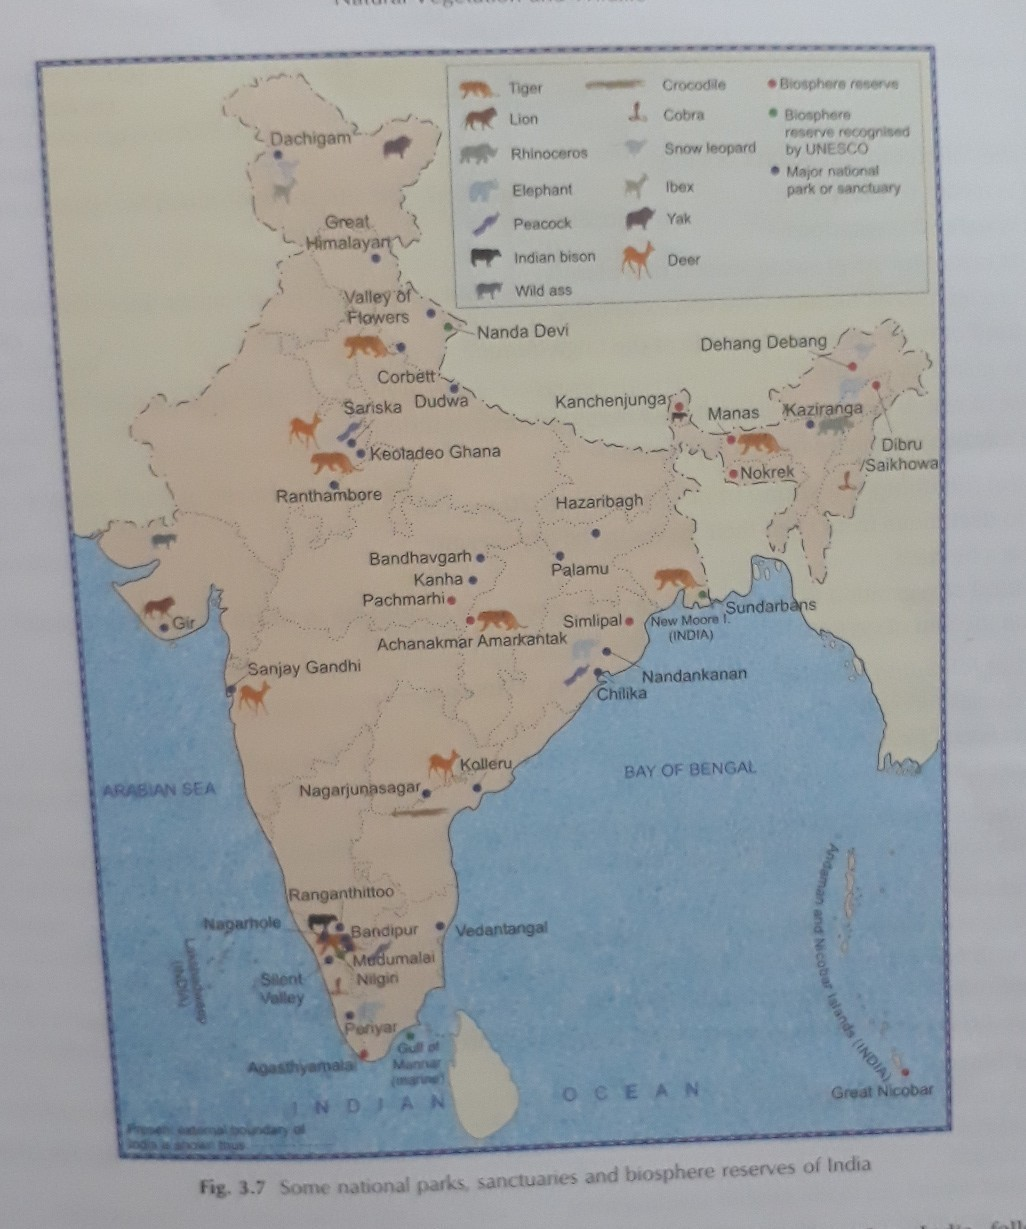 National parks in india in hindi with map - inly.in on india map hinduism, india map english, india map history, india map urdu, india map maharashtra, india map rajasthan, india map punjabi, india map delhi, india map states and rivers, india map mumbai, india map bangla, india map state names, india cities map, india map asia, india map art, india map in tamil, india map indo-gangetic plain, india map nepal, india map geography, india map gujarat,